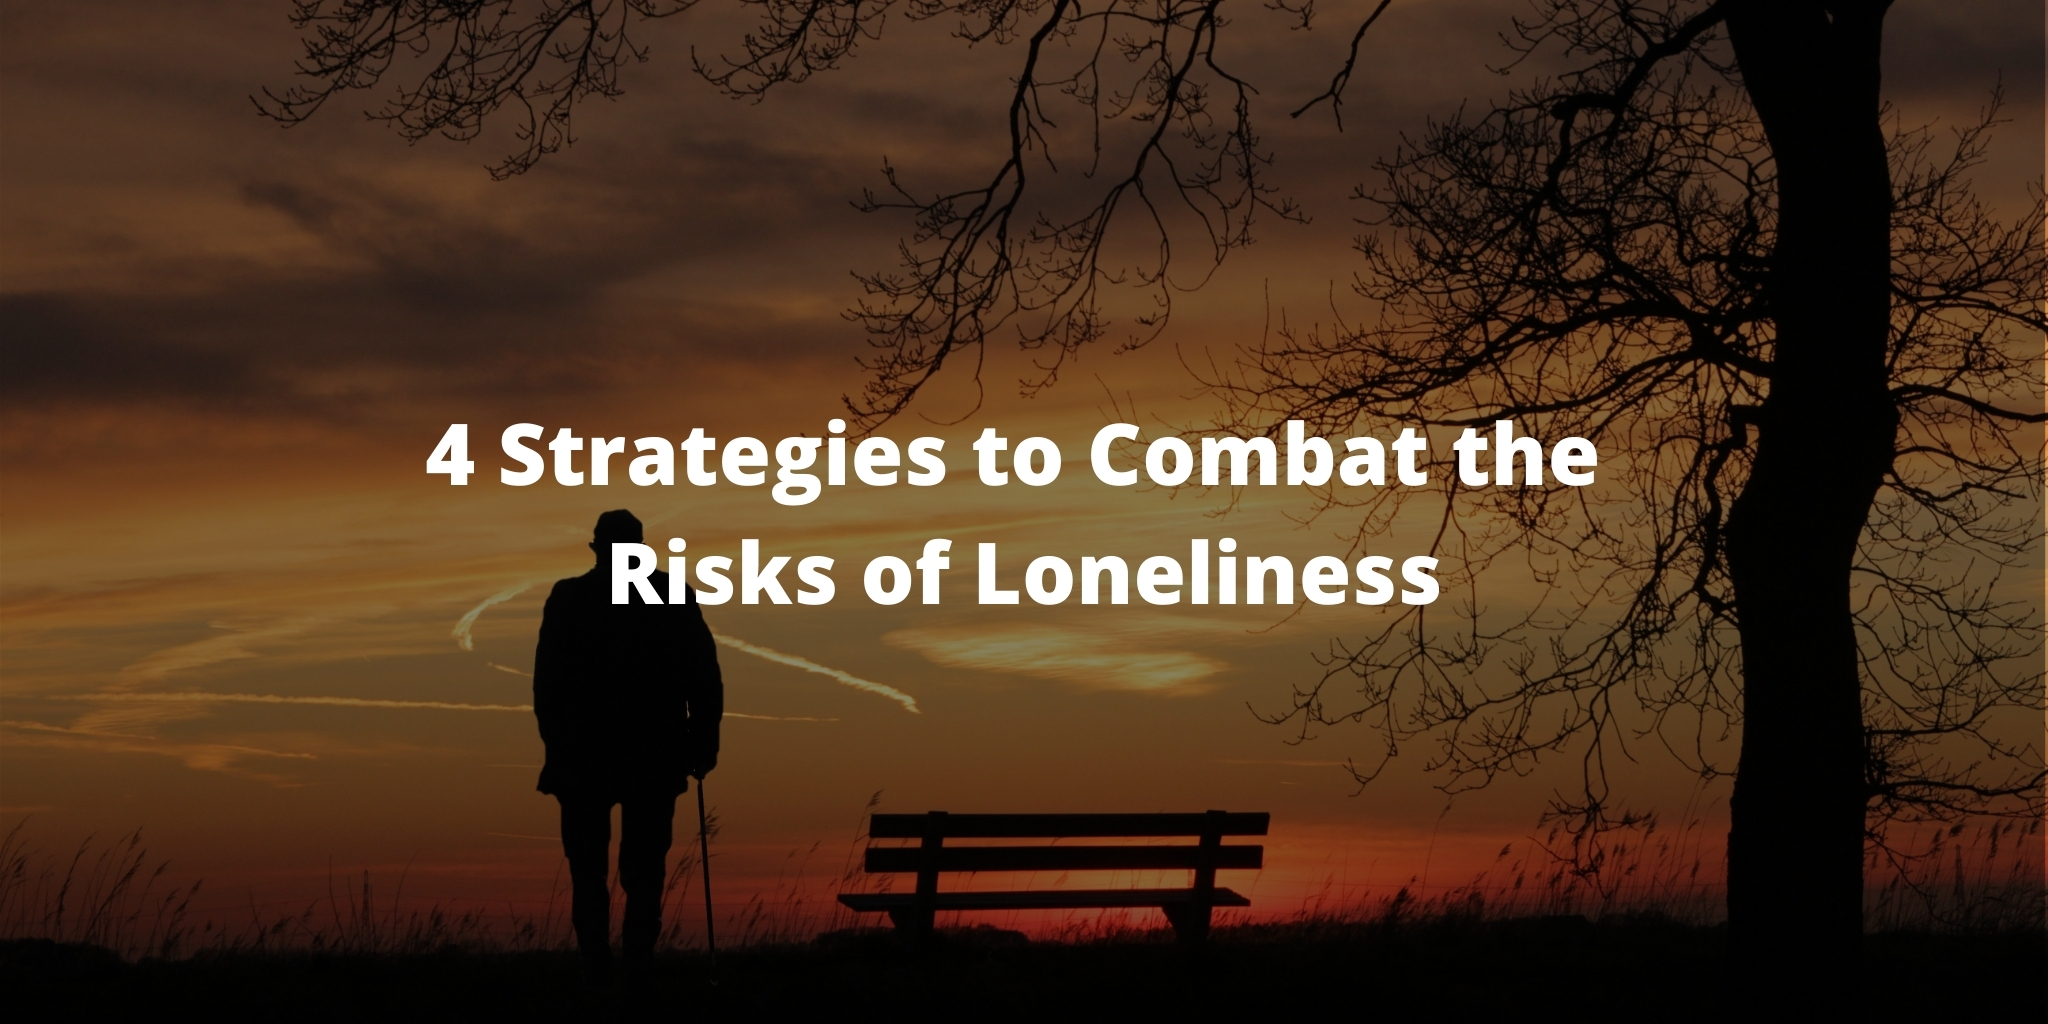 4 Strategies to Combat the Risks of Loneliness